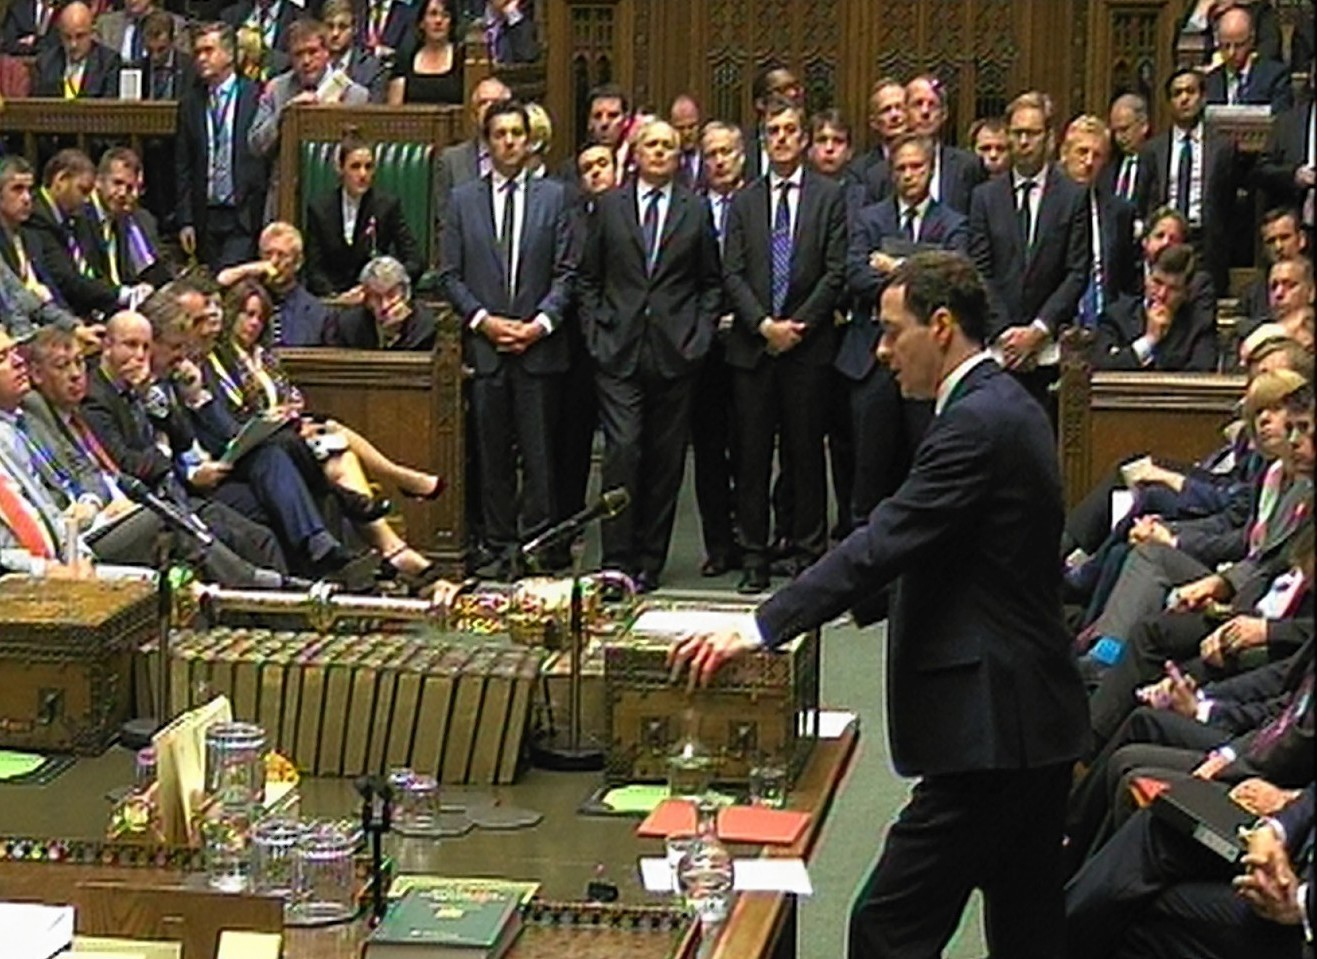 Chancellor of the Exchequer George Osborne delivers his Budget statement to the House of Commons